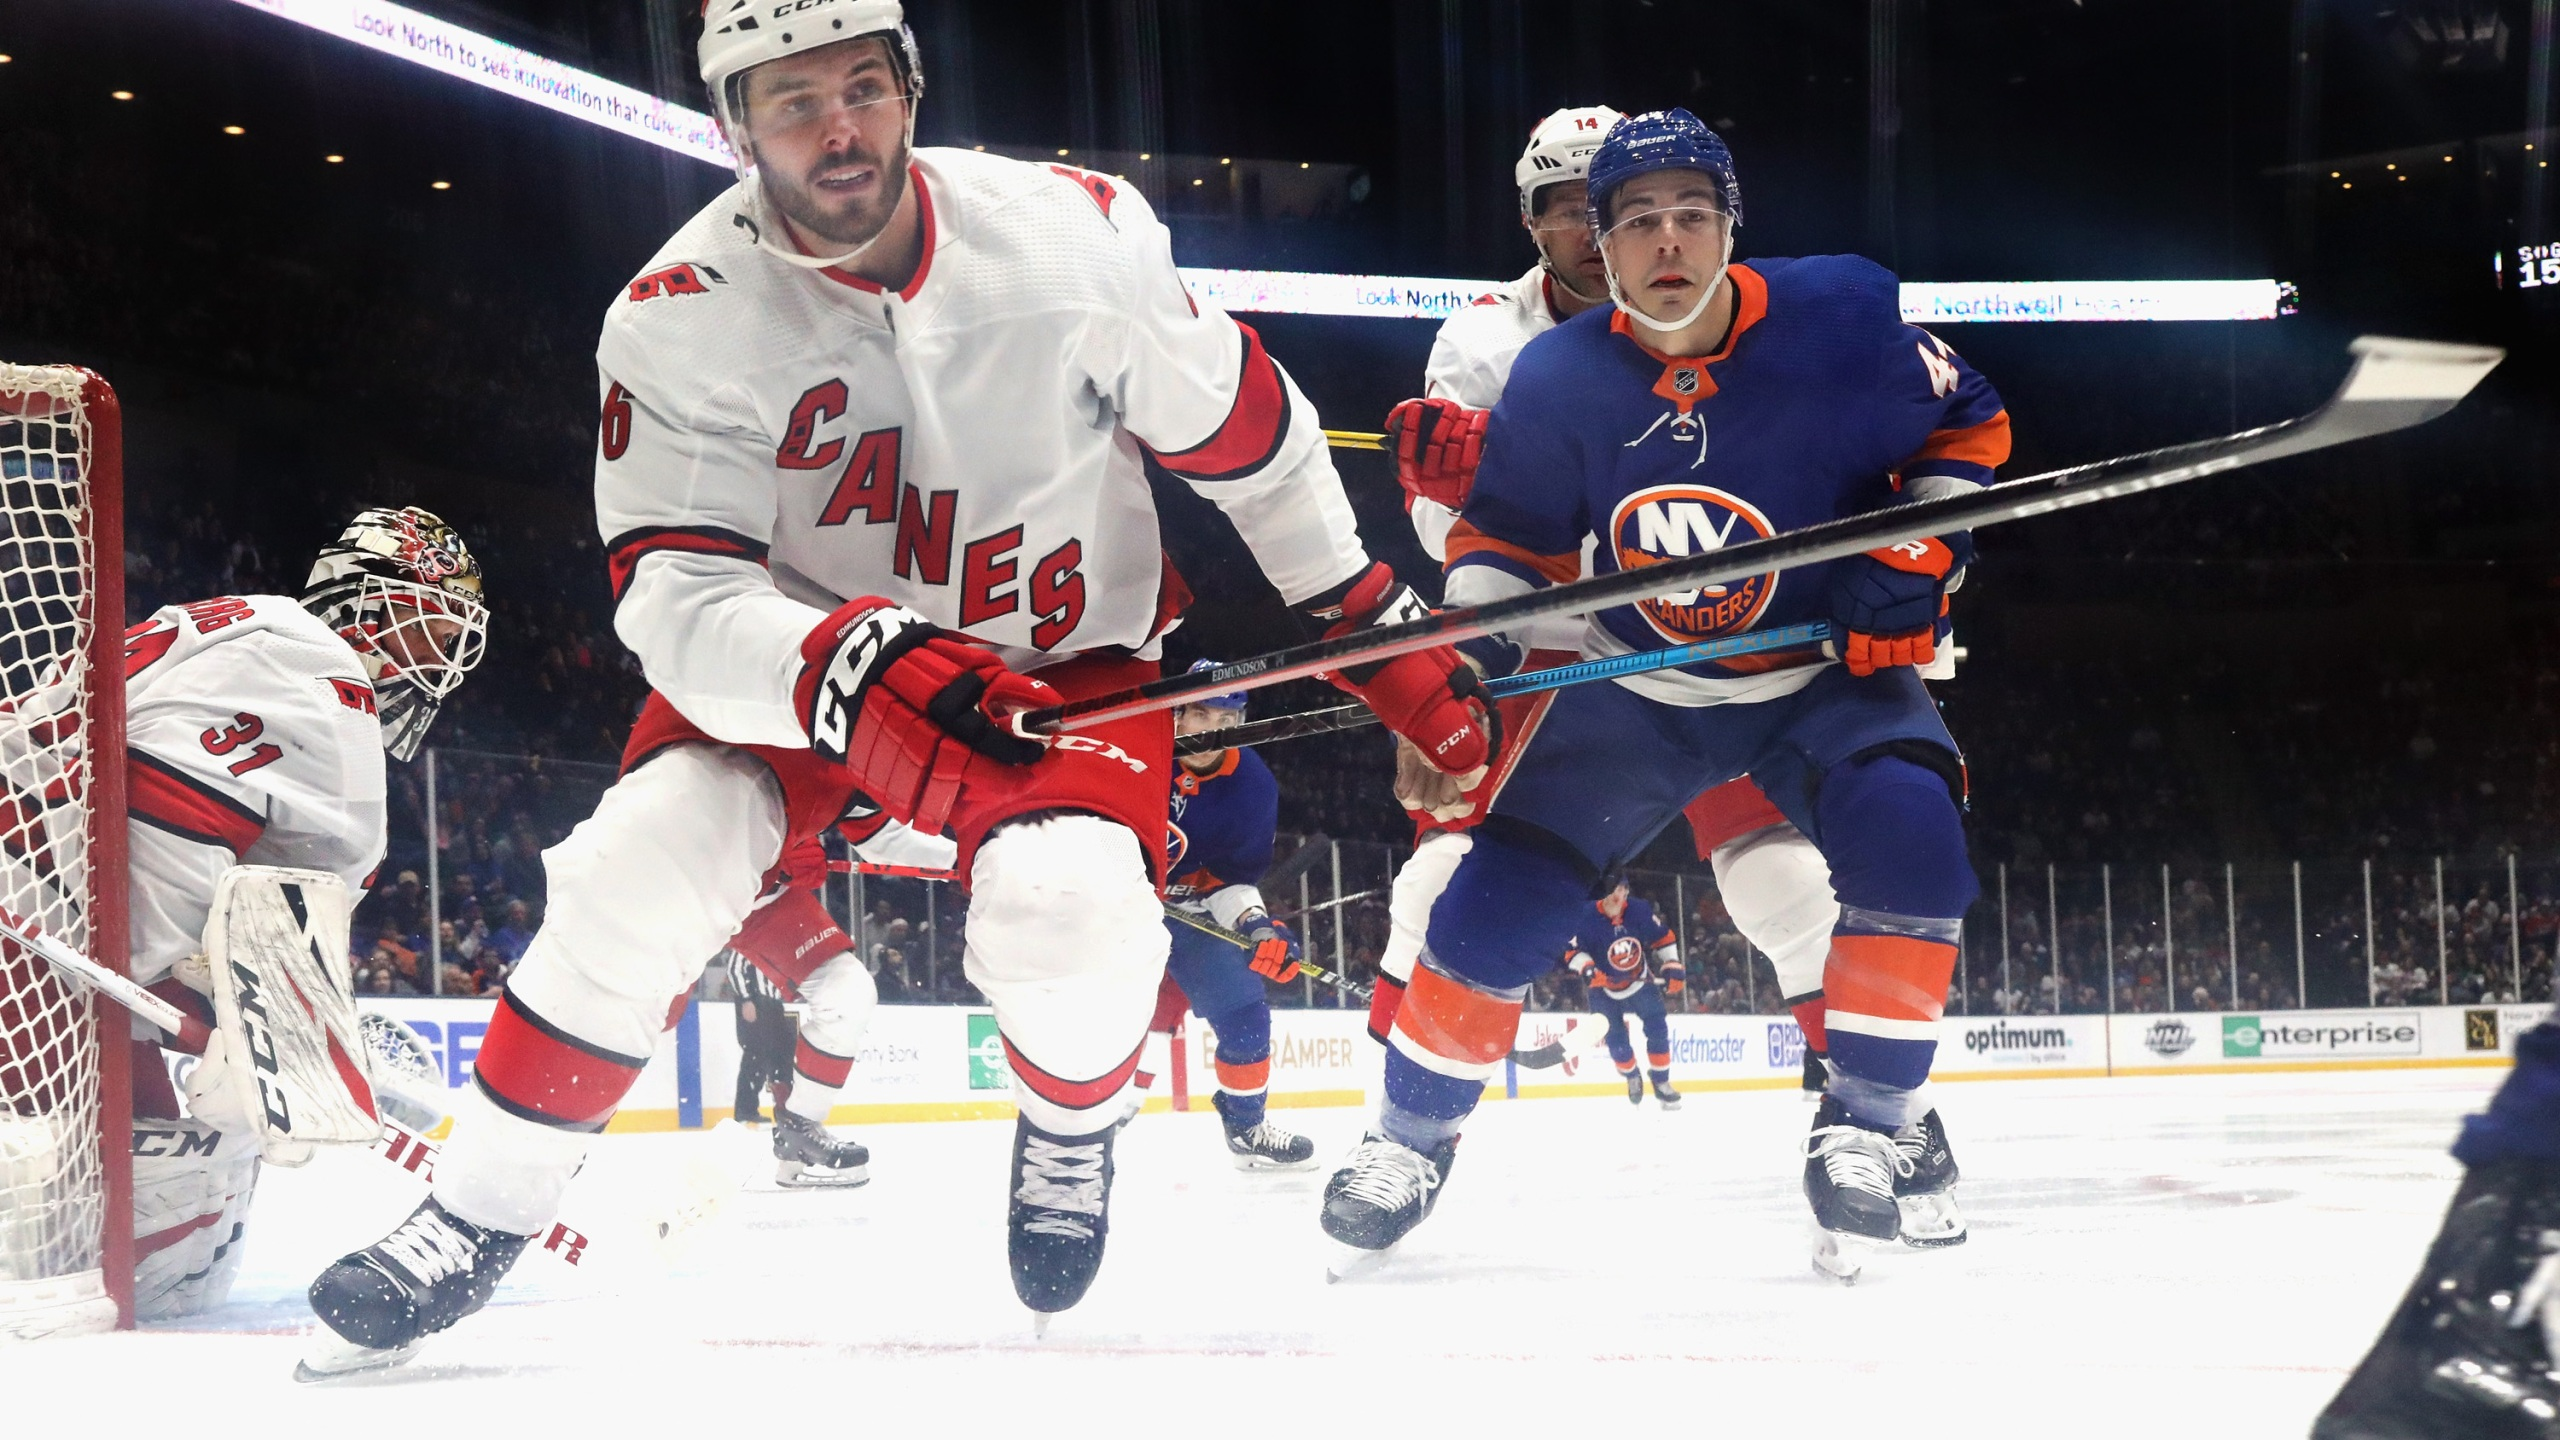 Joel Edmundson #6 of the Carolina Hurricanes skates against the New York Islanders at NYCB Live's Nassau Coliseum on March 07, 2020 in Uniondale, New York. (Photo by Bruce Bennett/Getty Images)